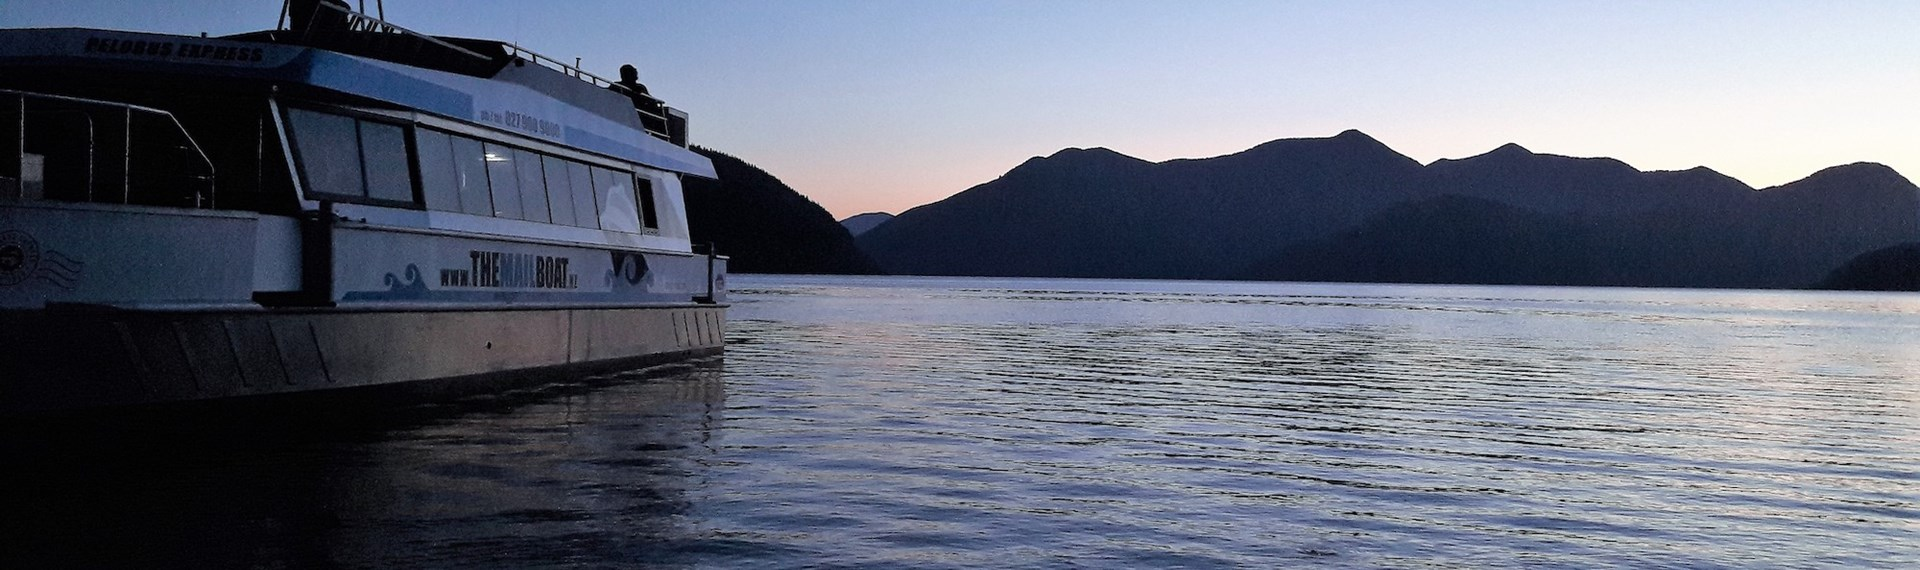 Pelorus Mail Boat at sunset in the water during a charter.